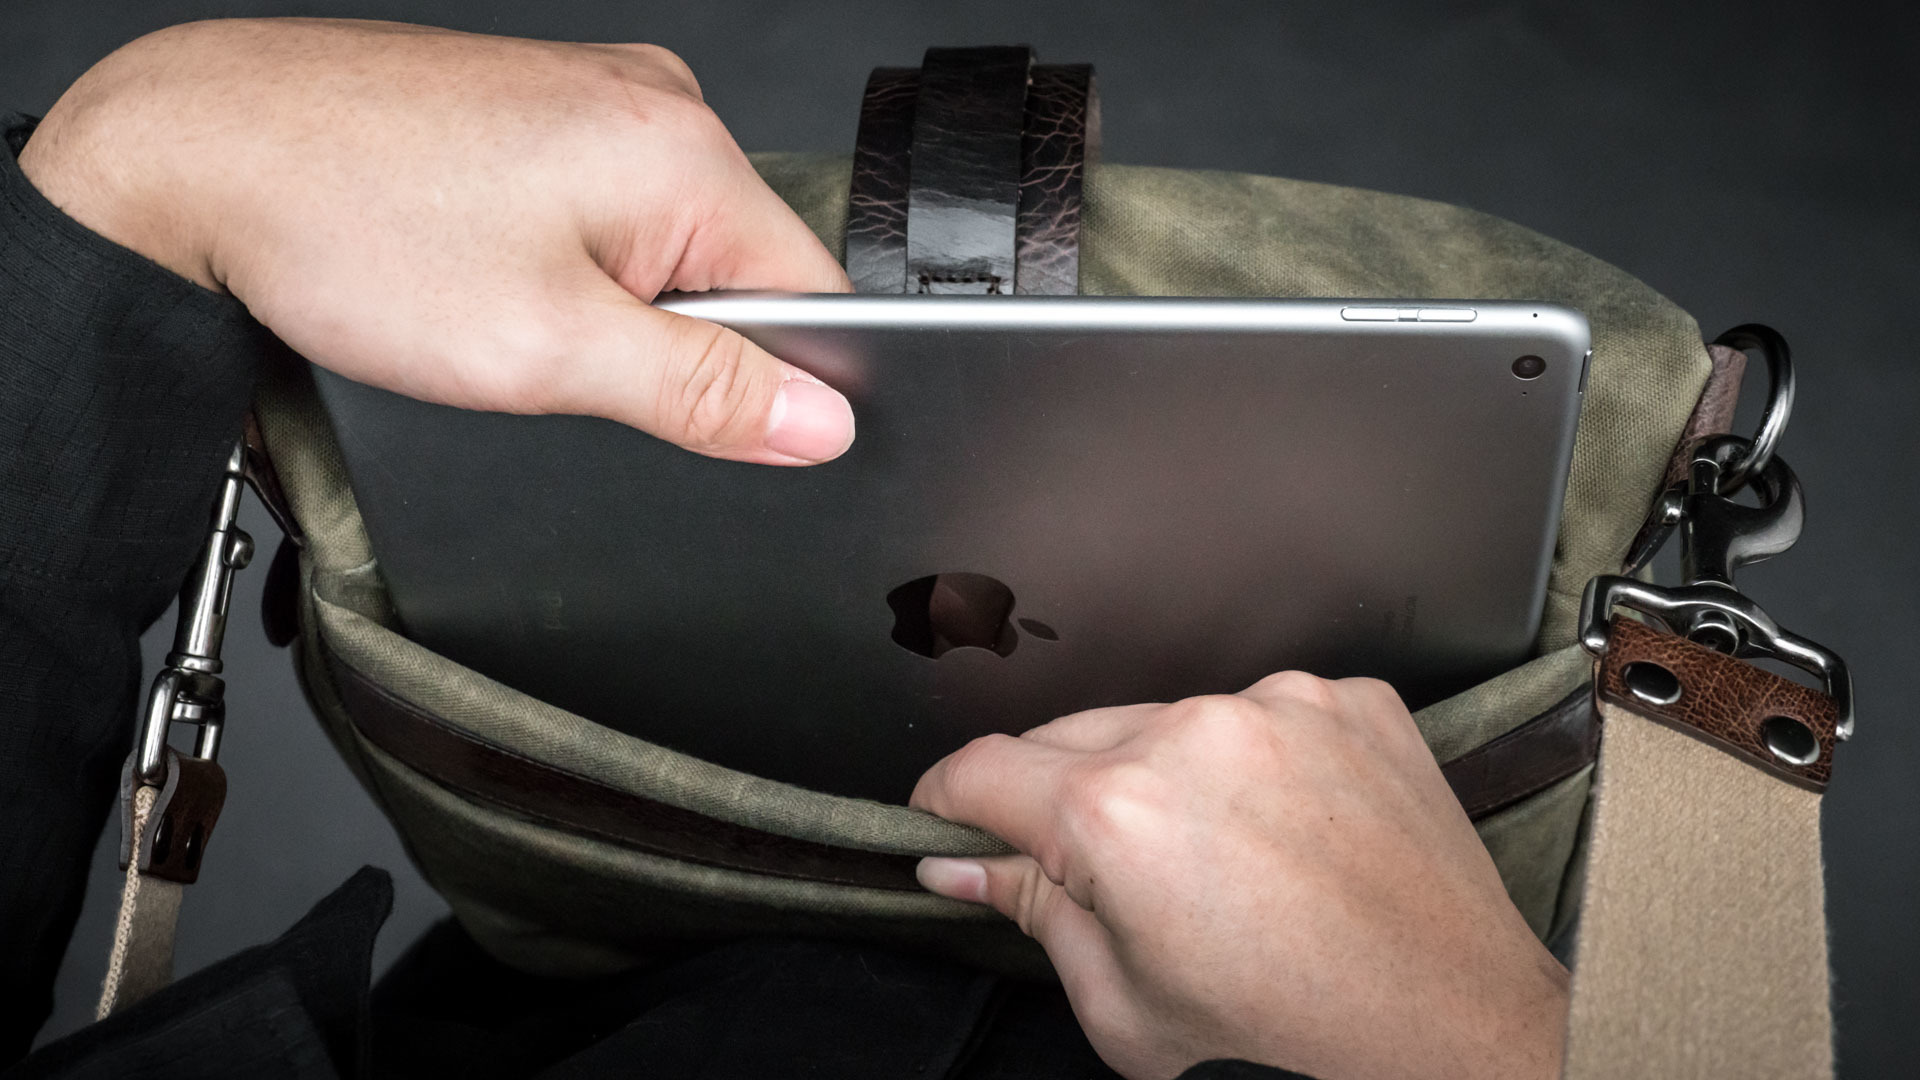 Fitting iPad into back pocket.